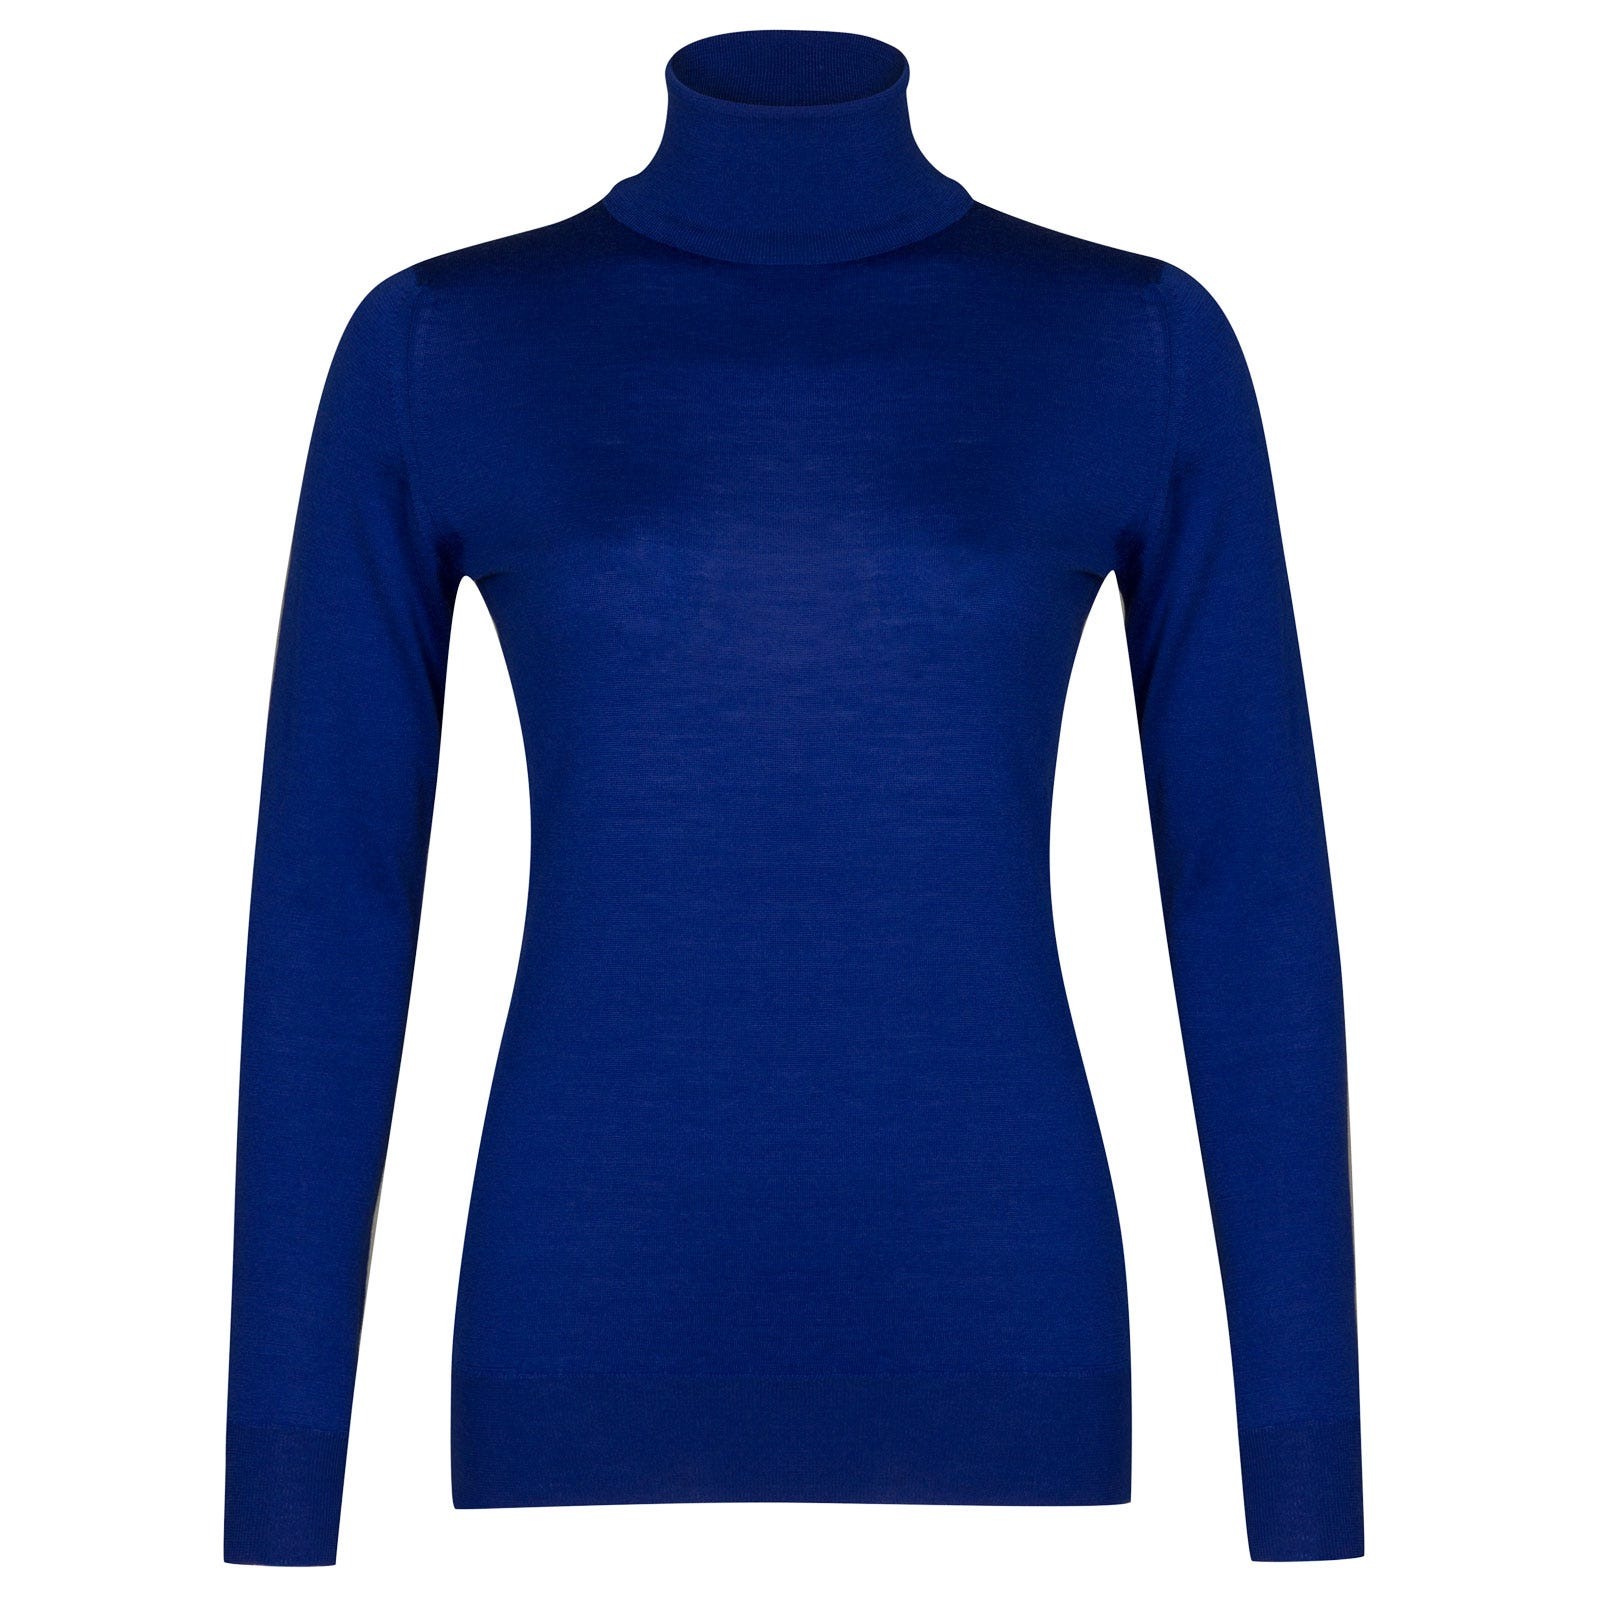 John Smedley Catkin Merino Wool Sweater in Coniston Blue-M